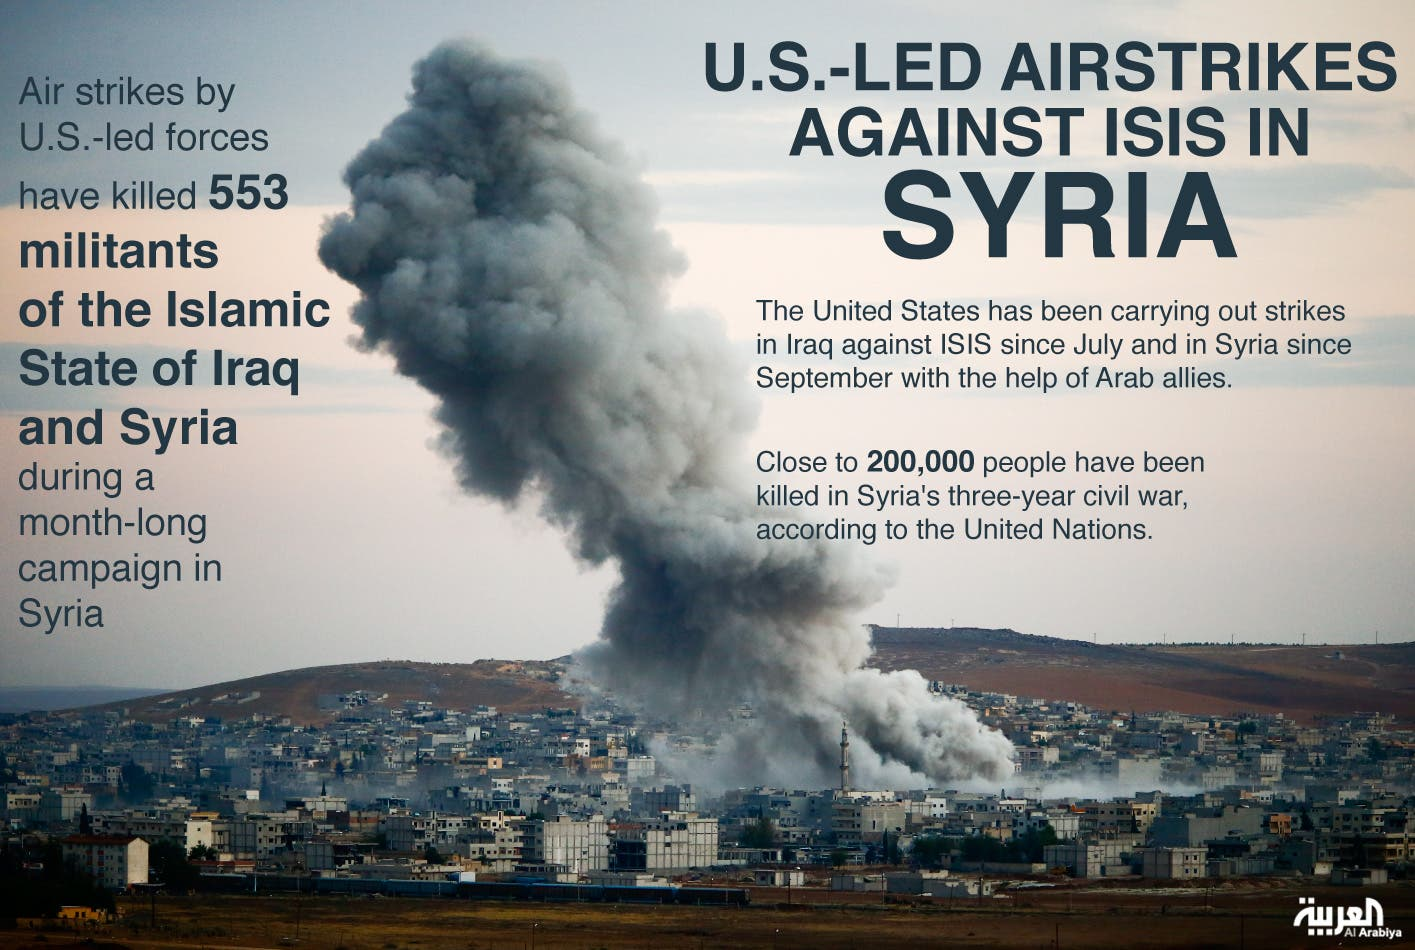 U.S.-led air strikes killed 553 ISIS fighters in Syria ...